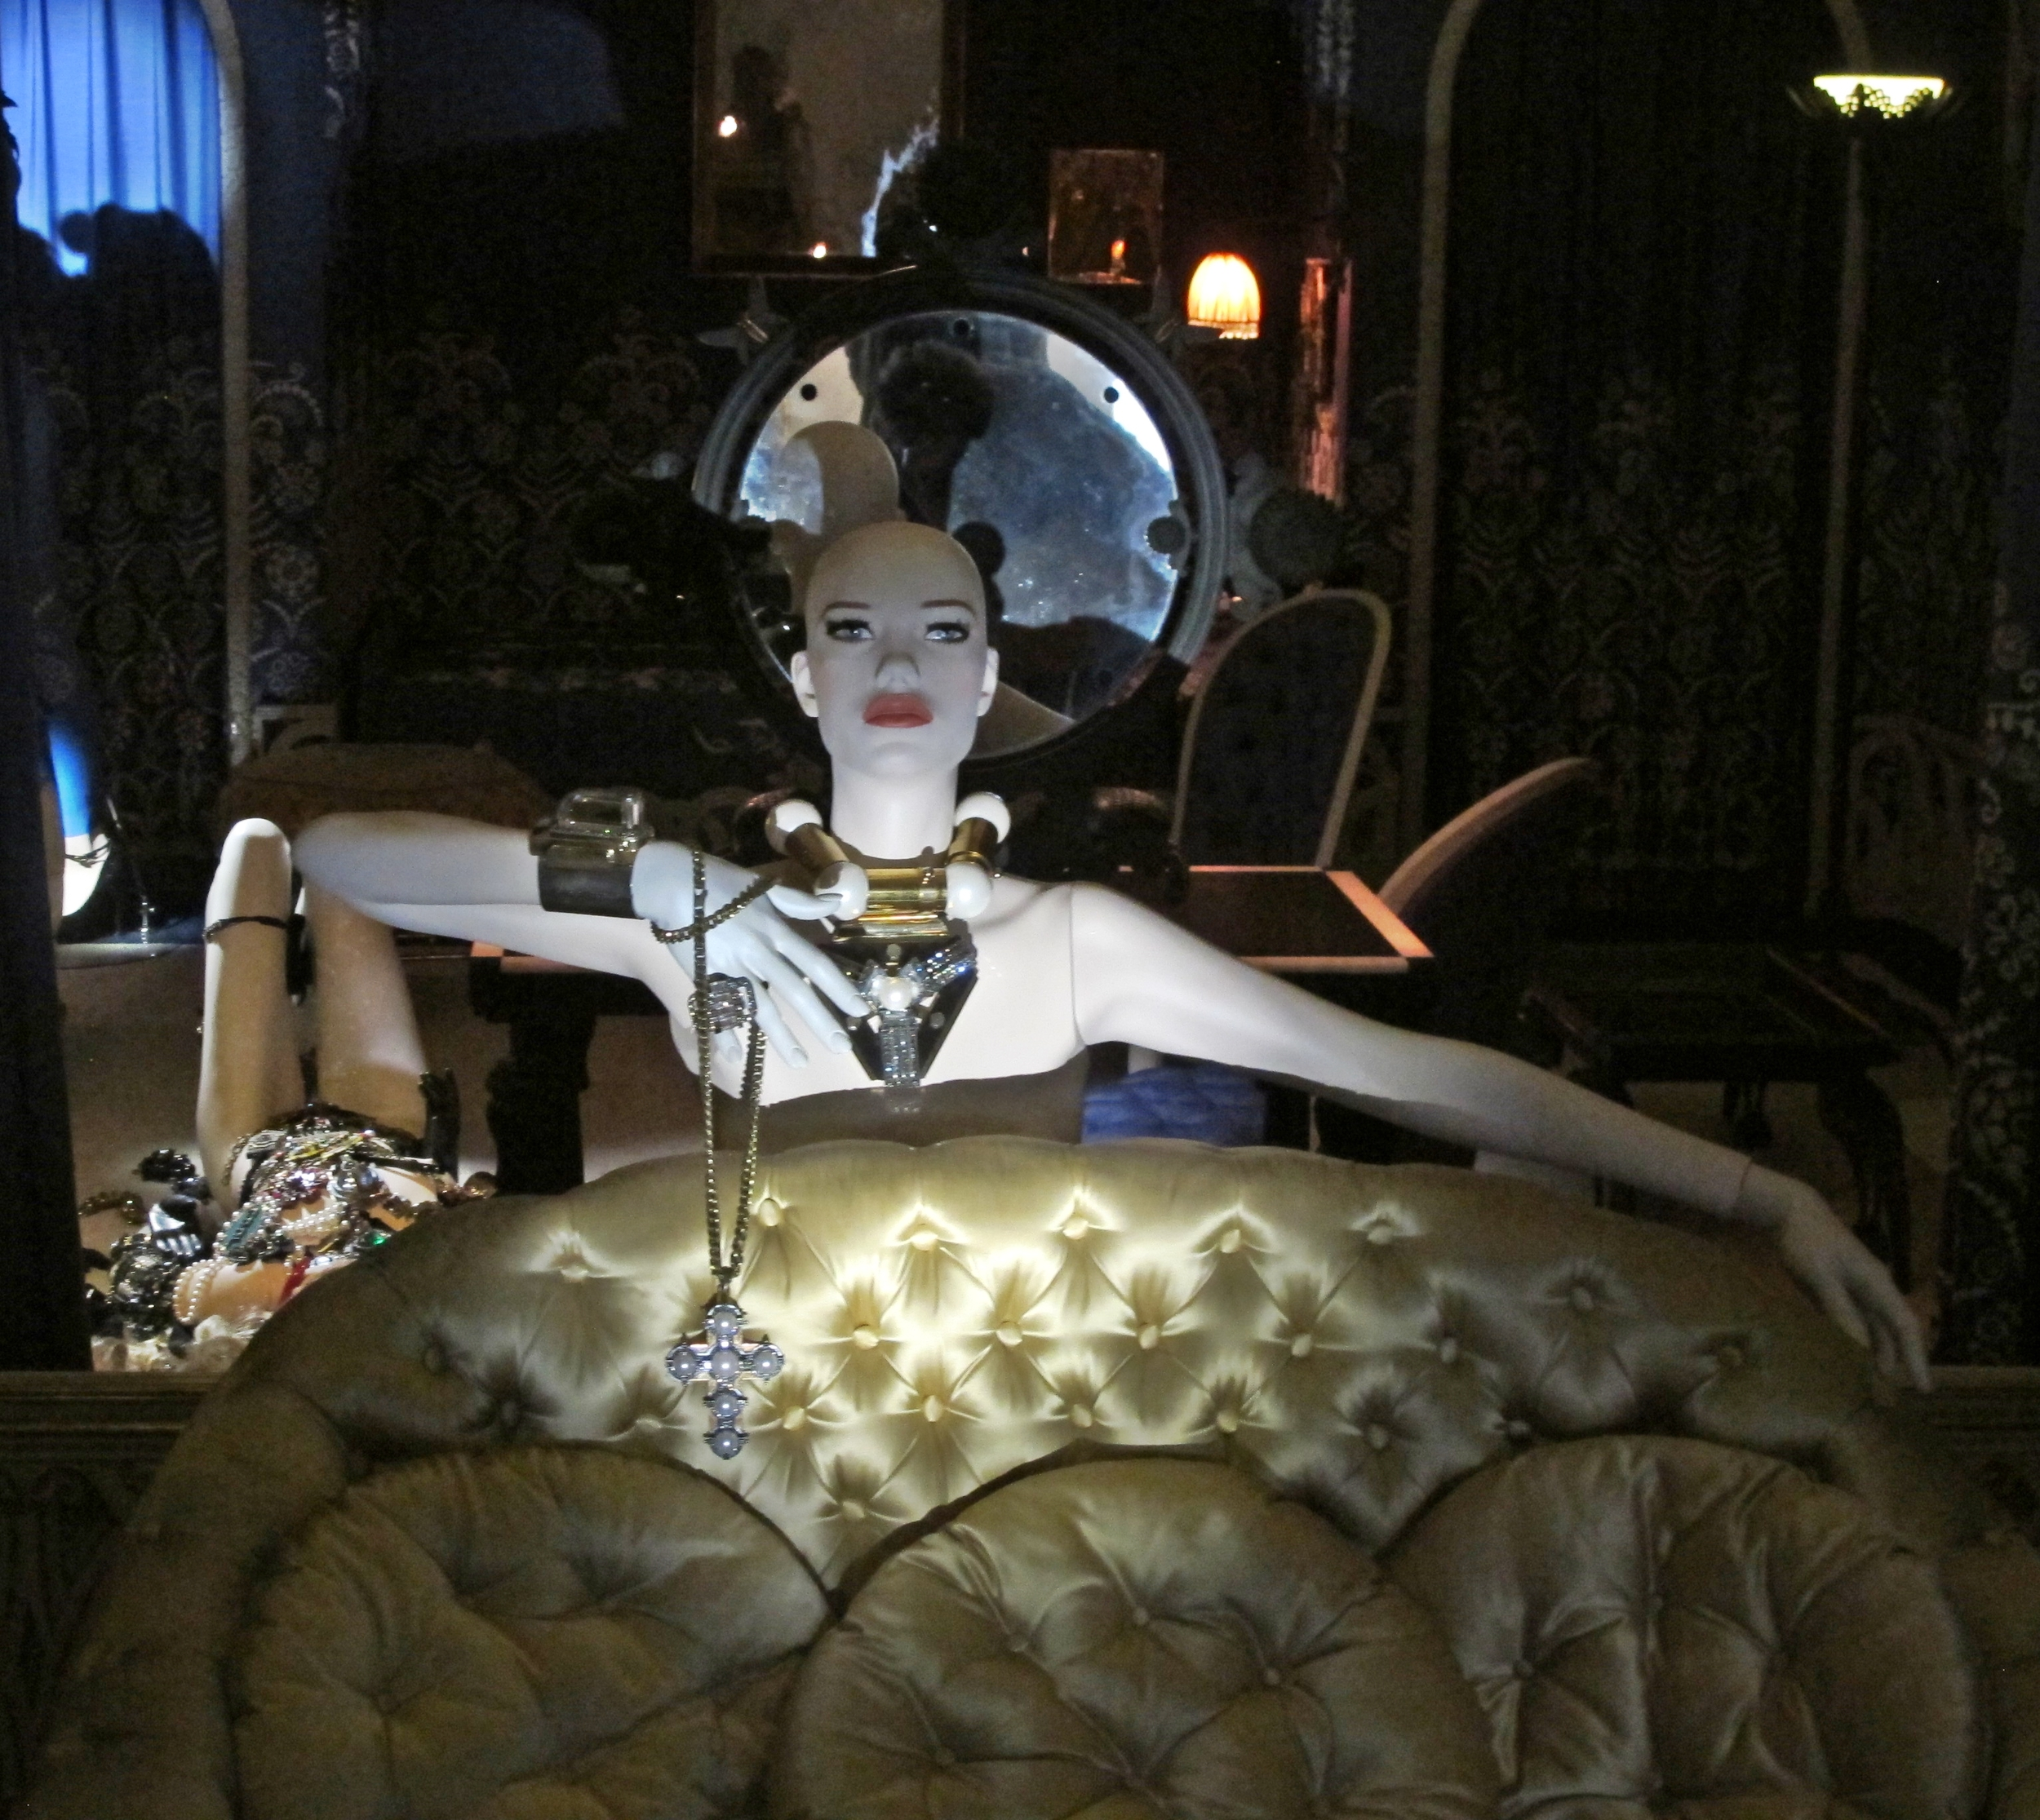 The brand new collection of Lanvin's jewelry is shown here next to a 1920s loveseat designed by Armand-Albert Rateau